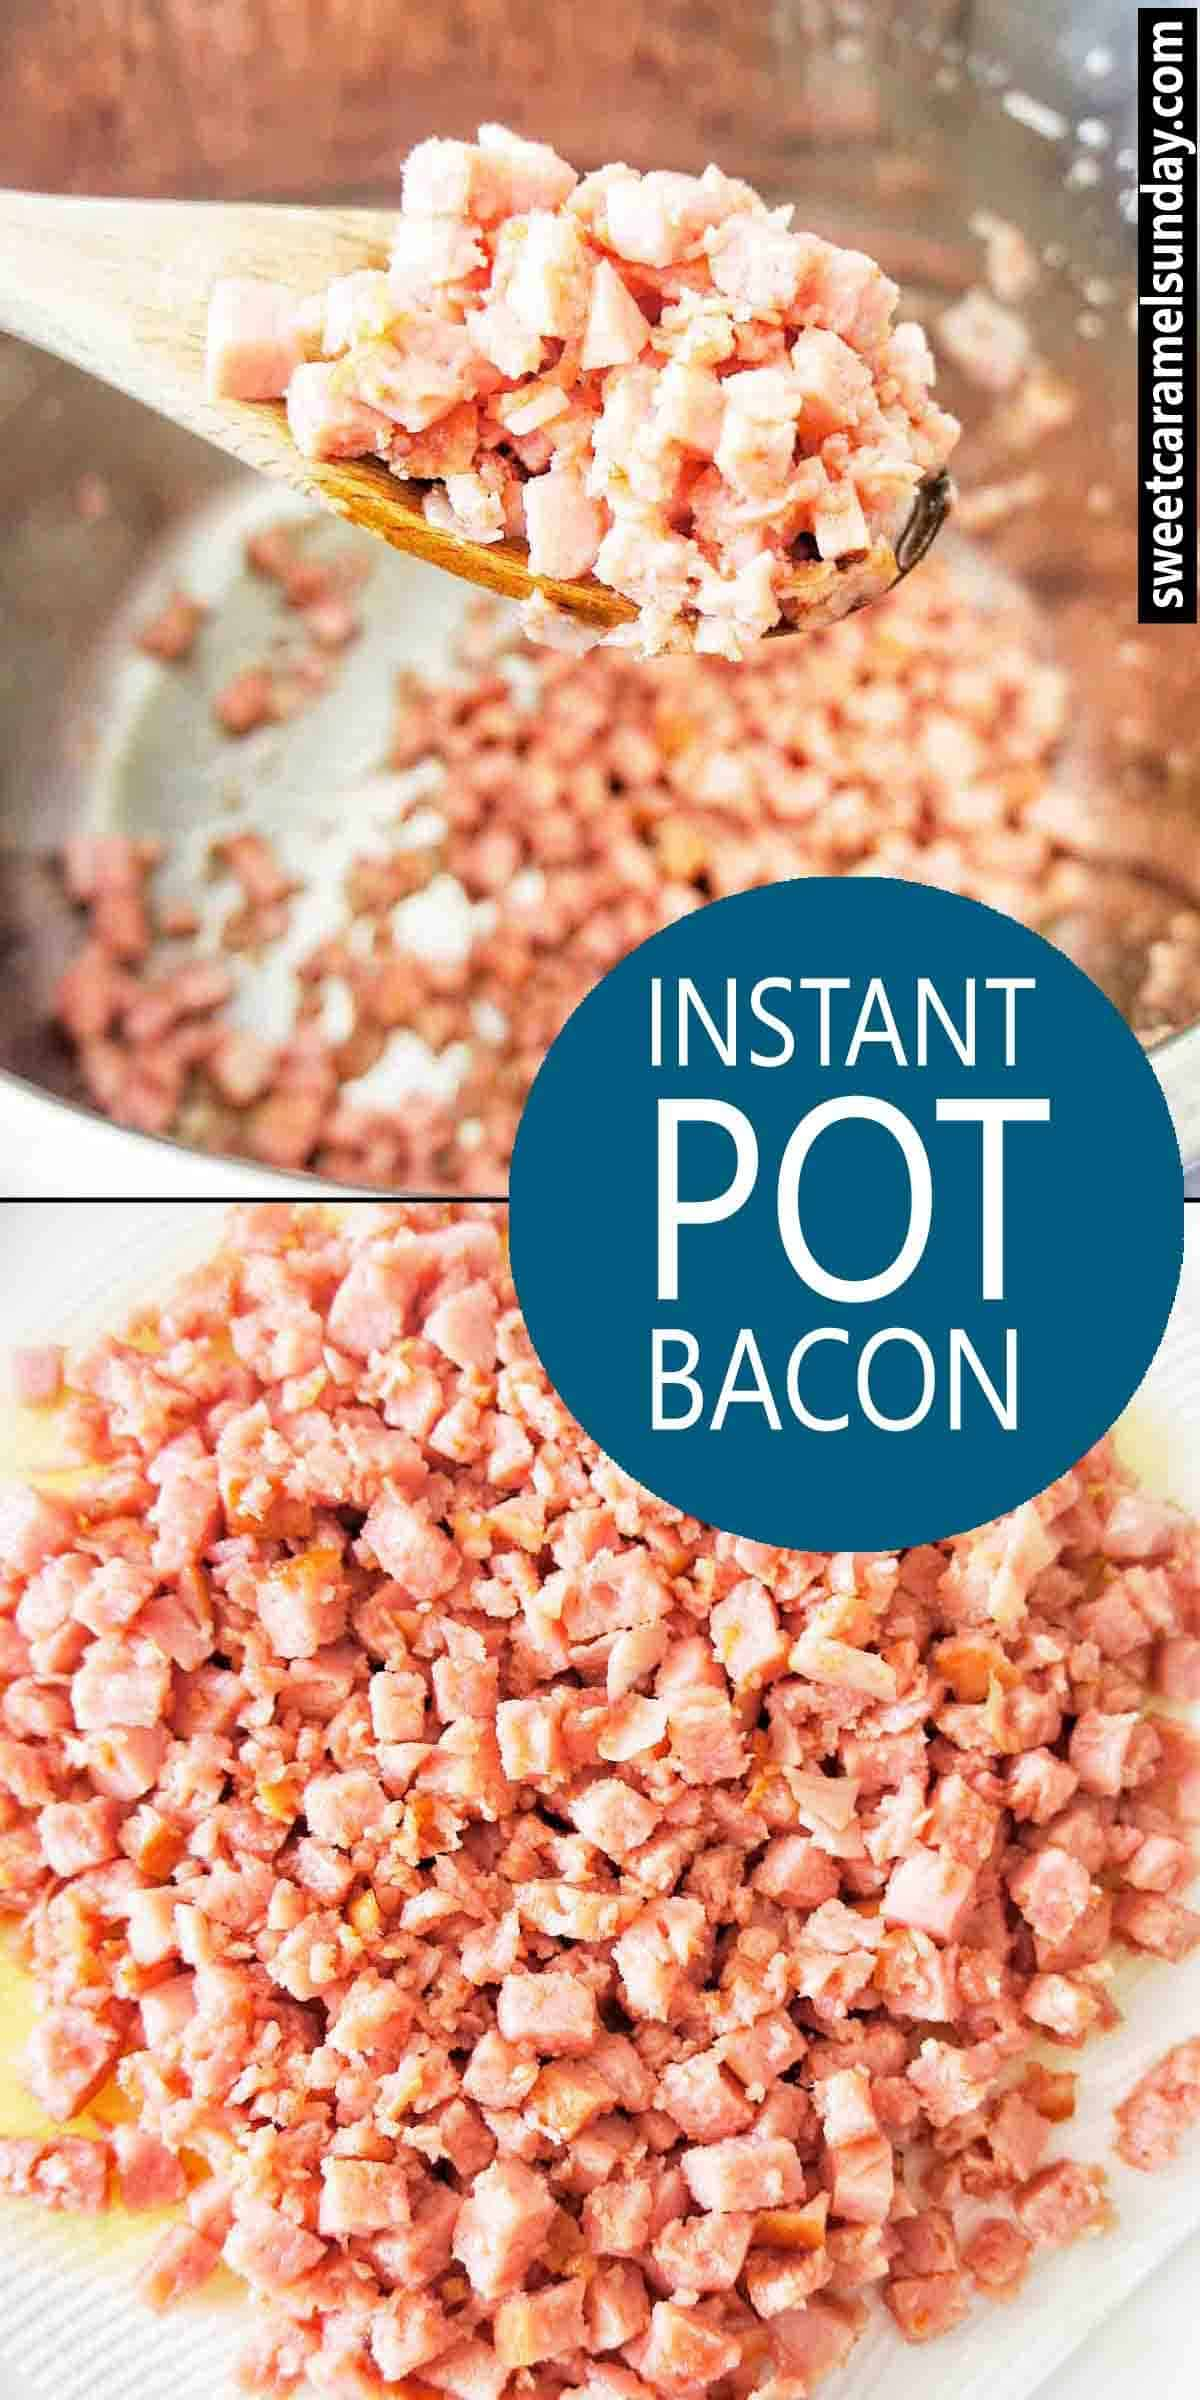 Instant Pot Bacon image with text overlay